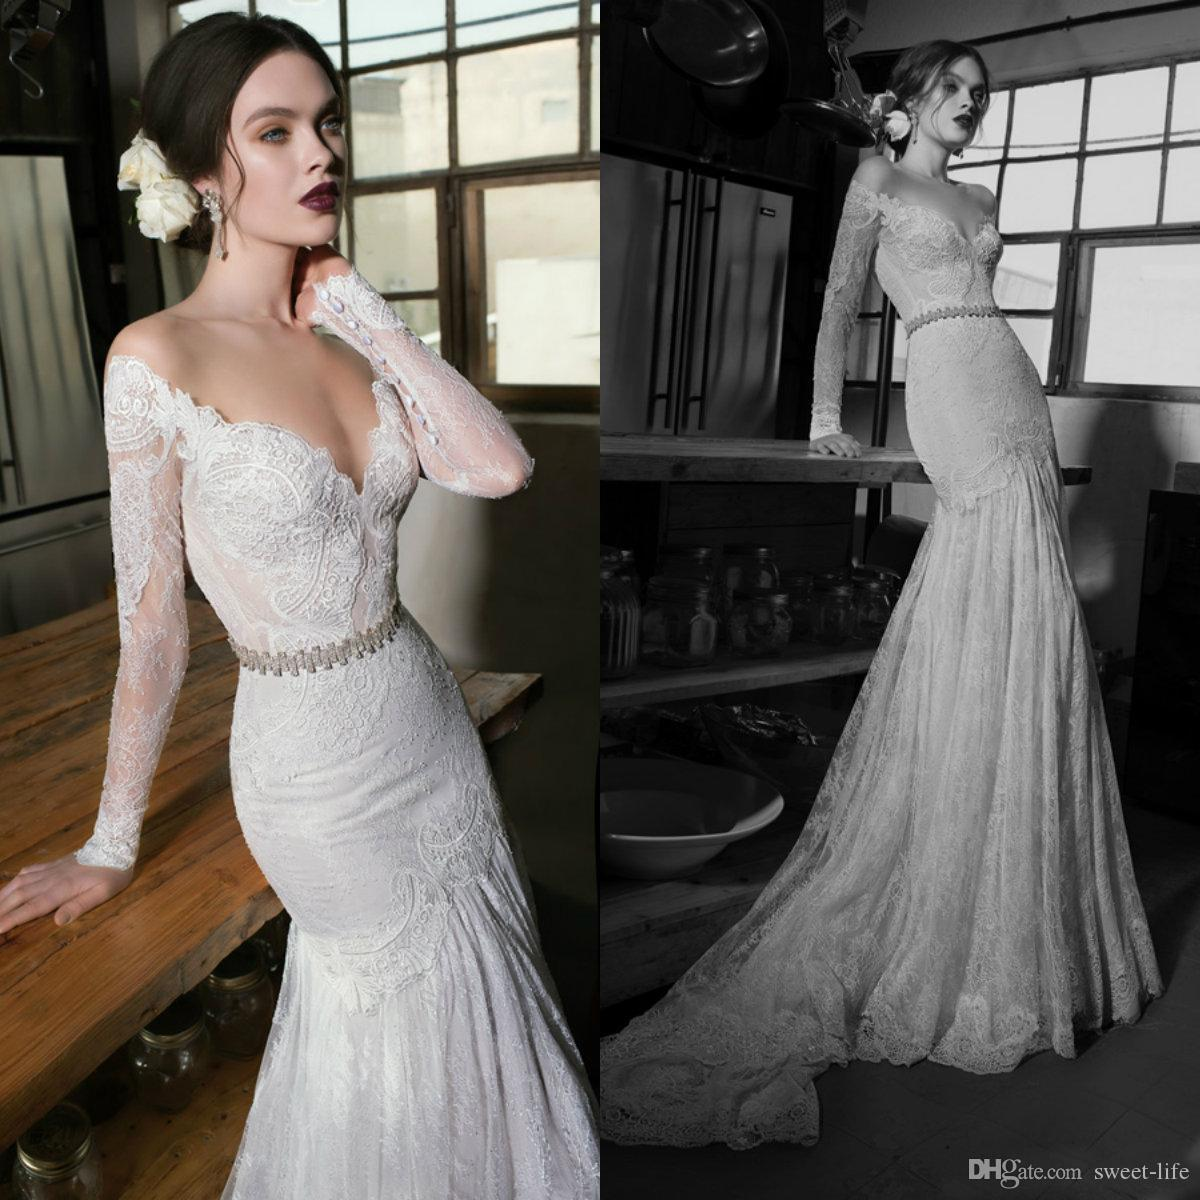 Long Sleeves Berta Cheap Wedding Dresses Bridal Gowns Sheer Jewel Neck Sweep Train Boho Mermaid Maxi Dress Lace Bride Gown robe de marriage